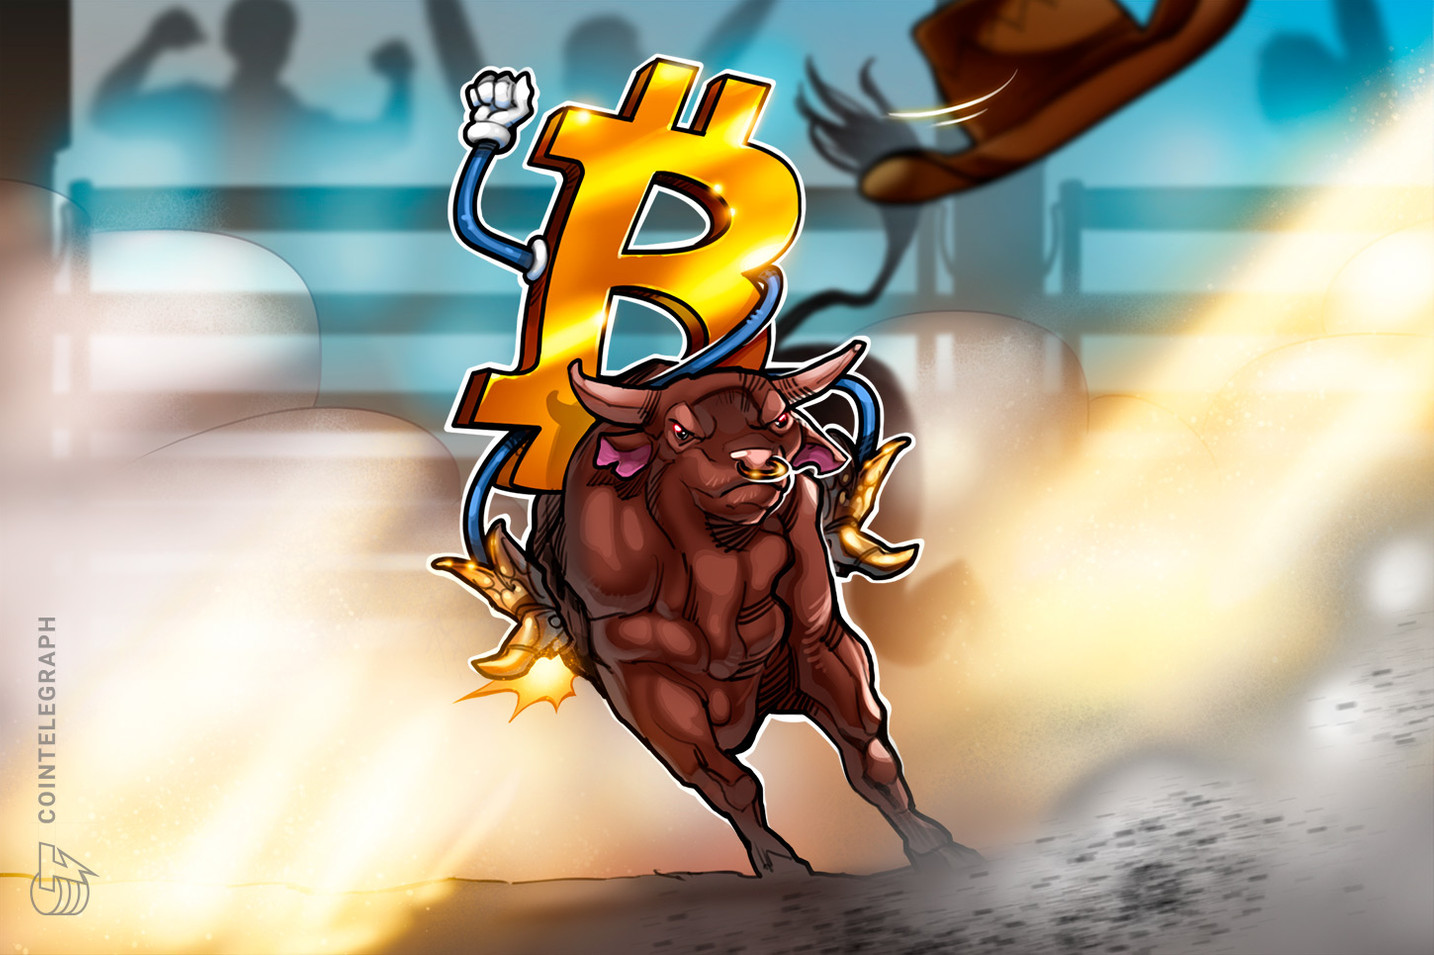 Bitcoin Price Stabilizing Above $10K With $11.6K Futures Gap in Sight